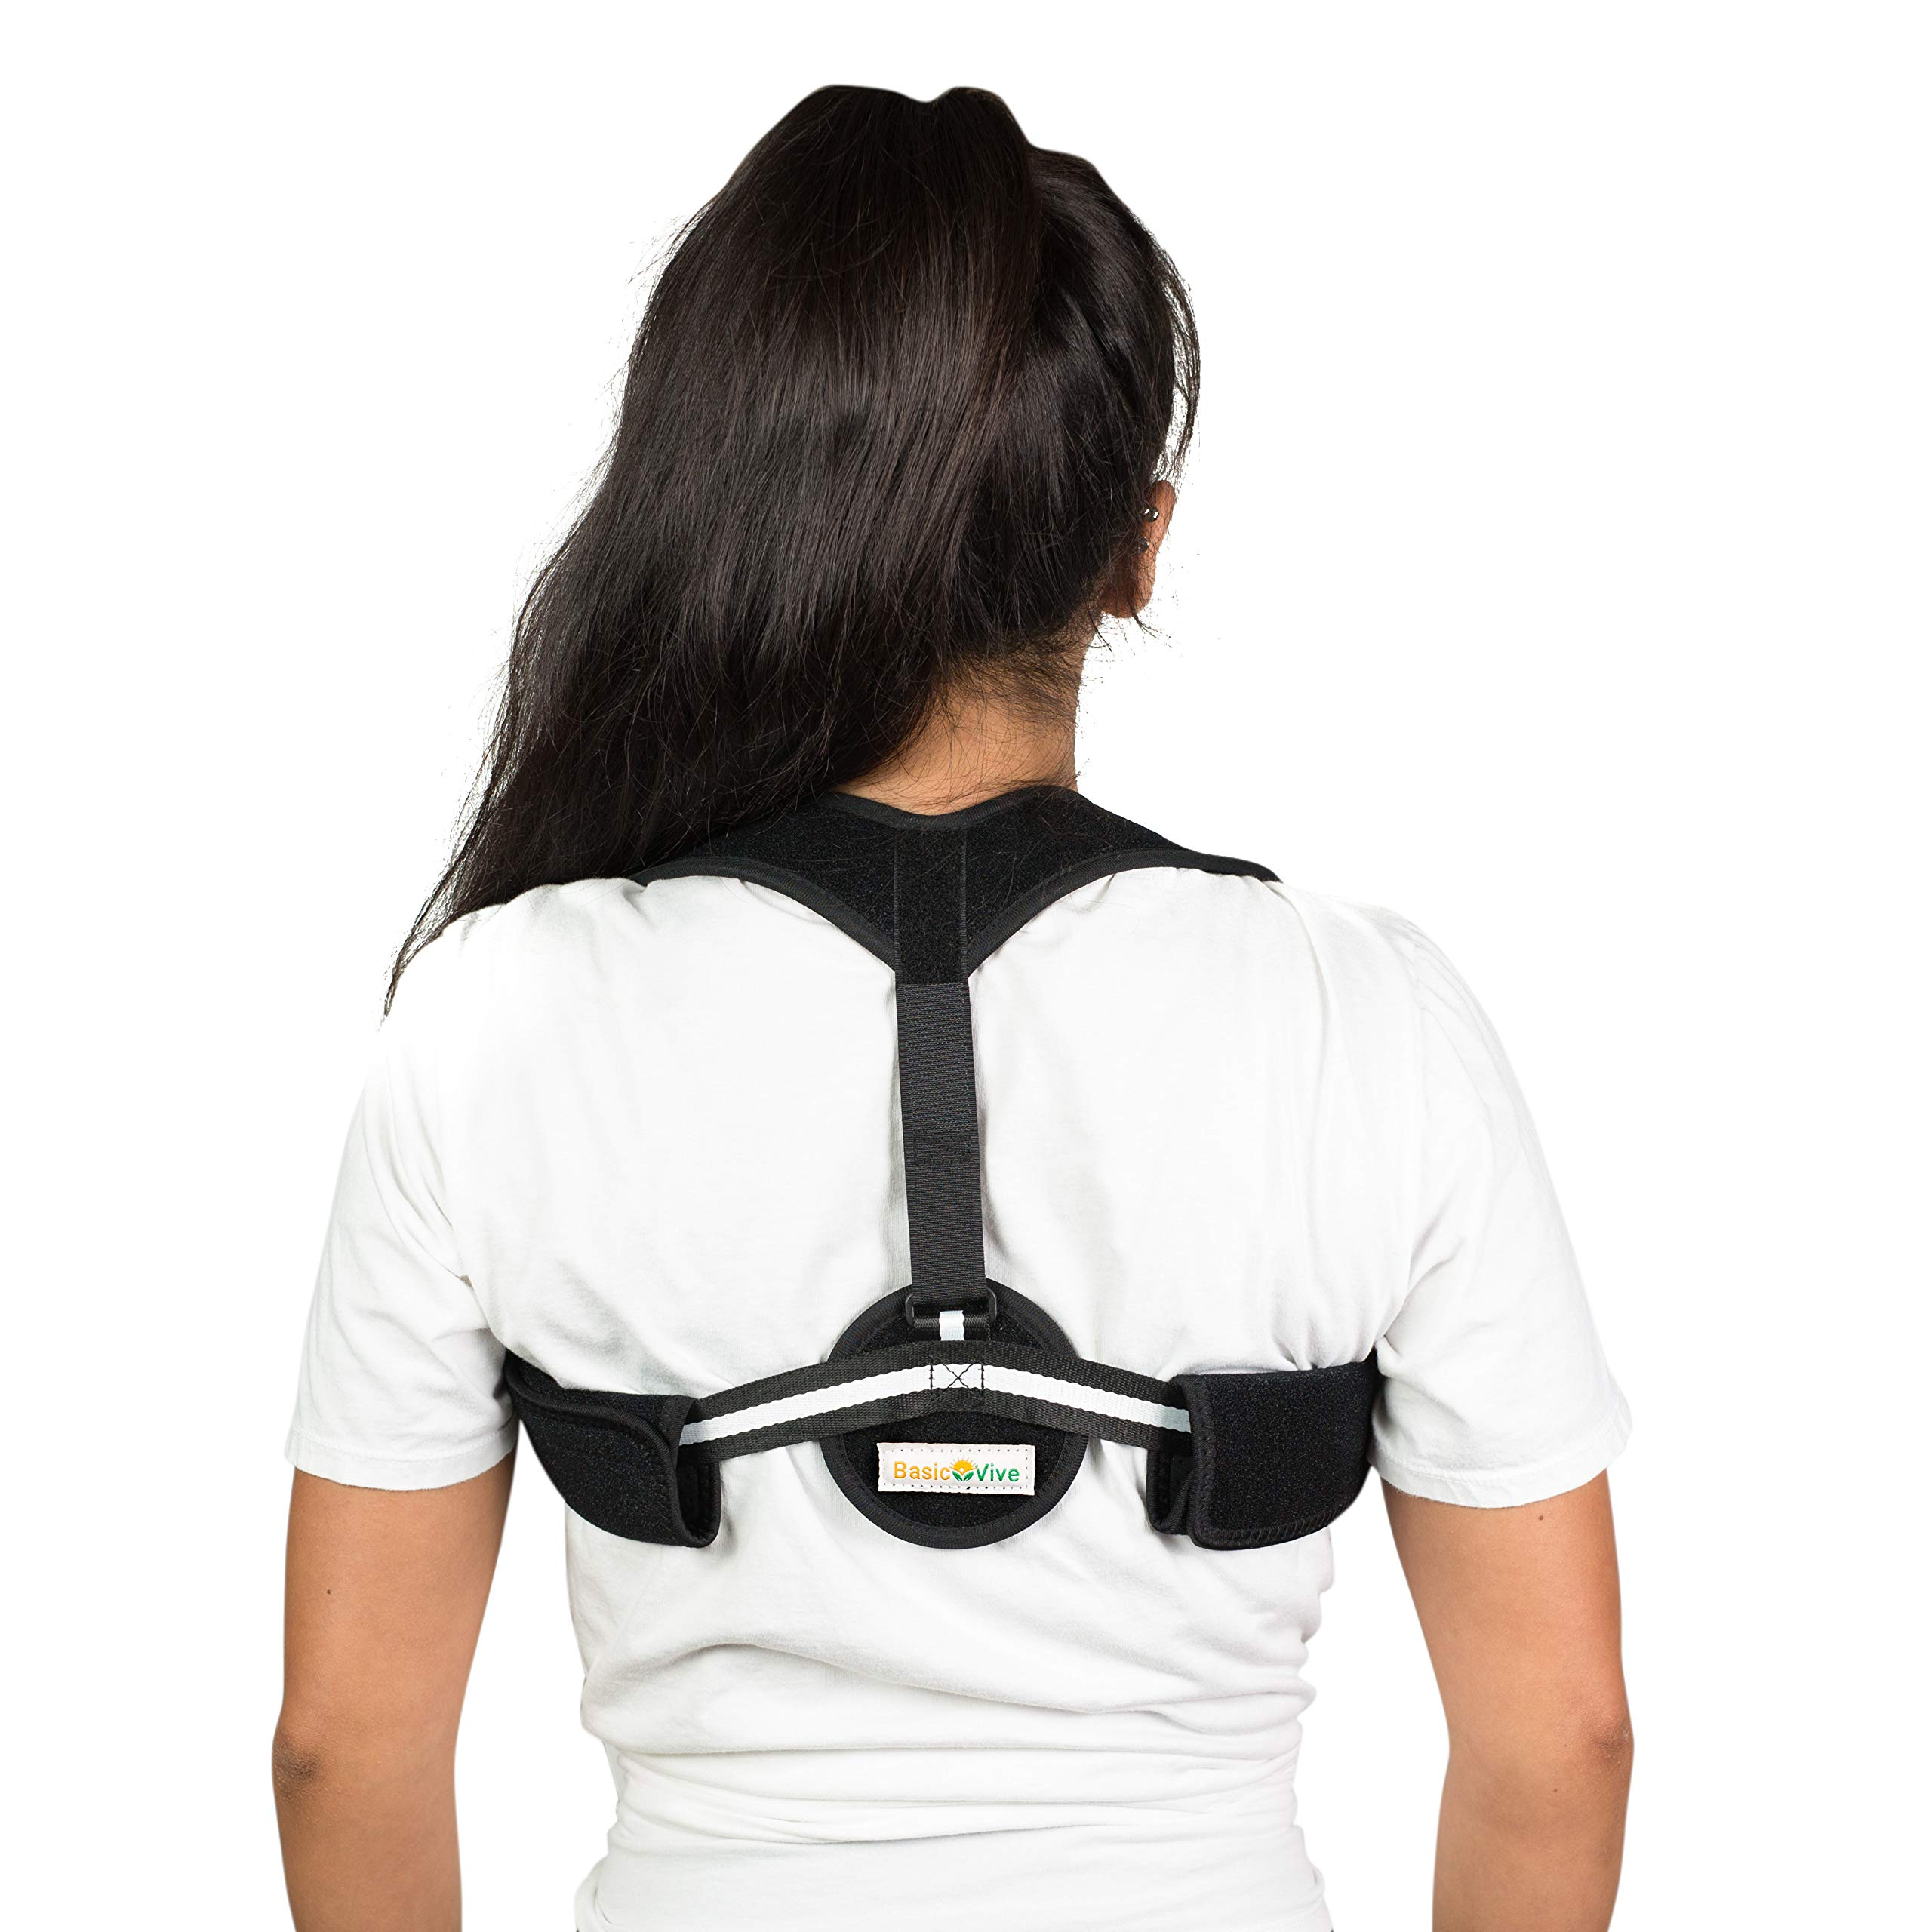 Posture Corrector for Women Men - Upper Back Pain Shoulder Support Neck Pain Relief - Comfortable Back Posture Brace - Clavicle Posture Support for Slouching Hunching - Discreet Design by BasicVive